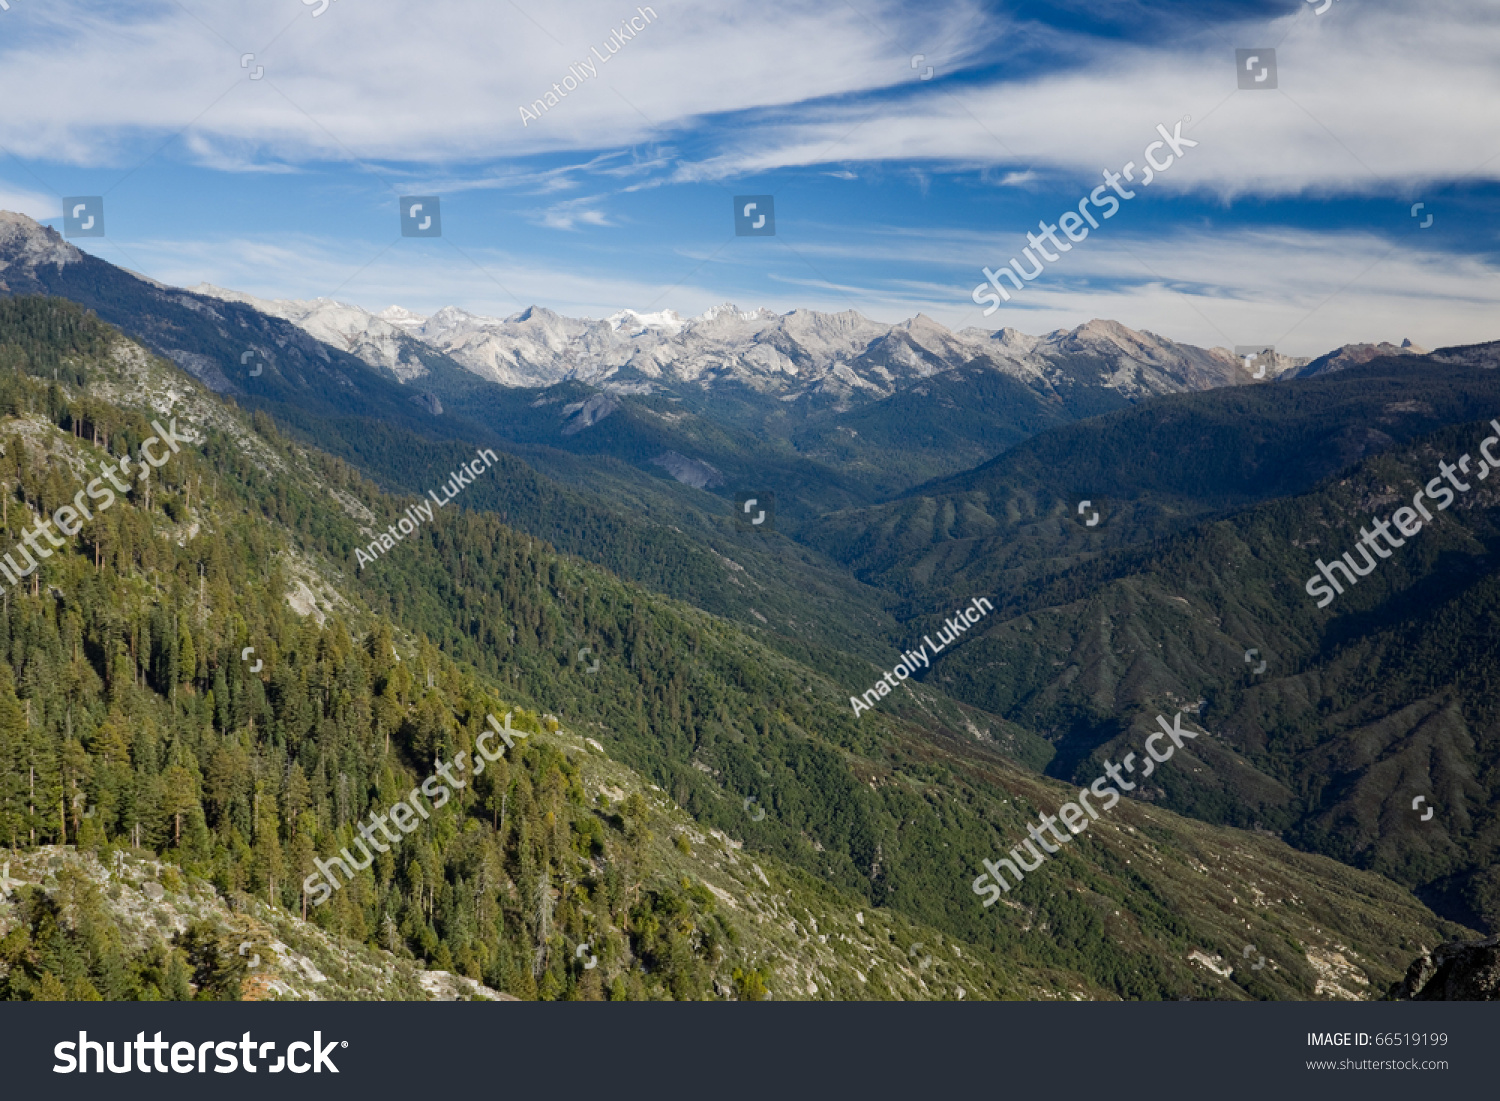 singles over 50 in kings canyon national pk Sequoia and kings canyon national parks and king's canyon national park this week we have seen lows in the single digits and the high today at 6,600 feet is.